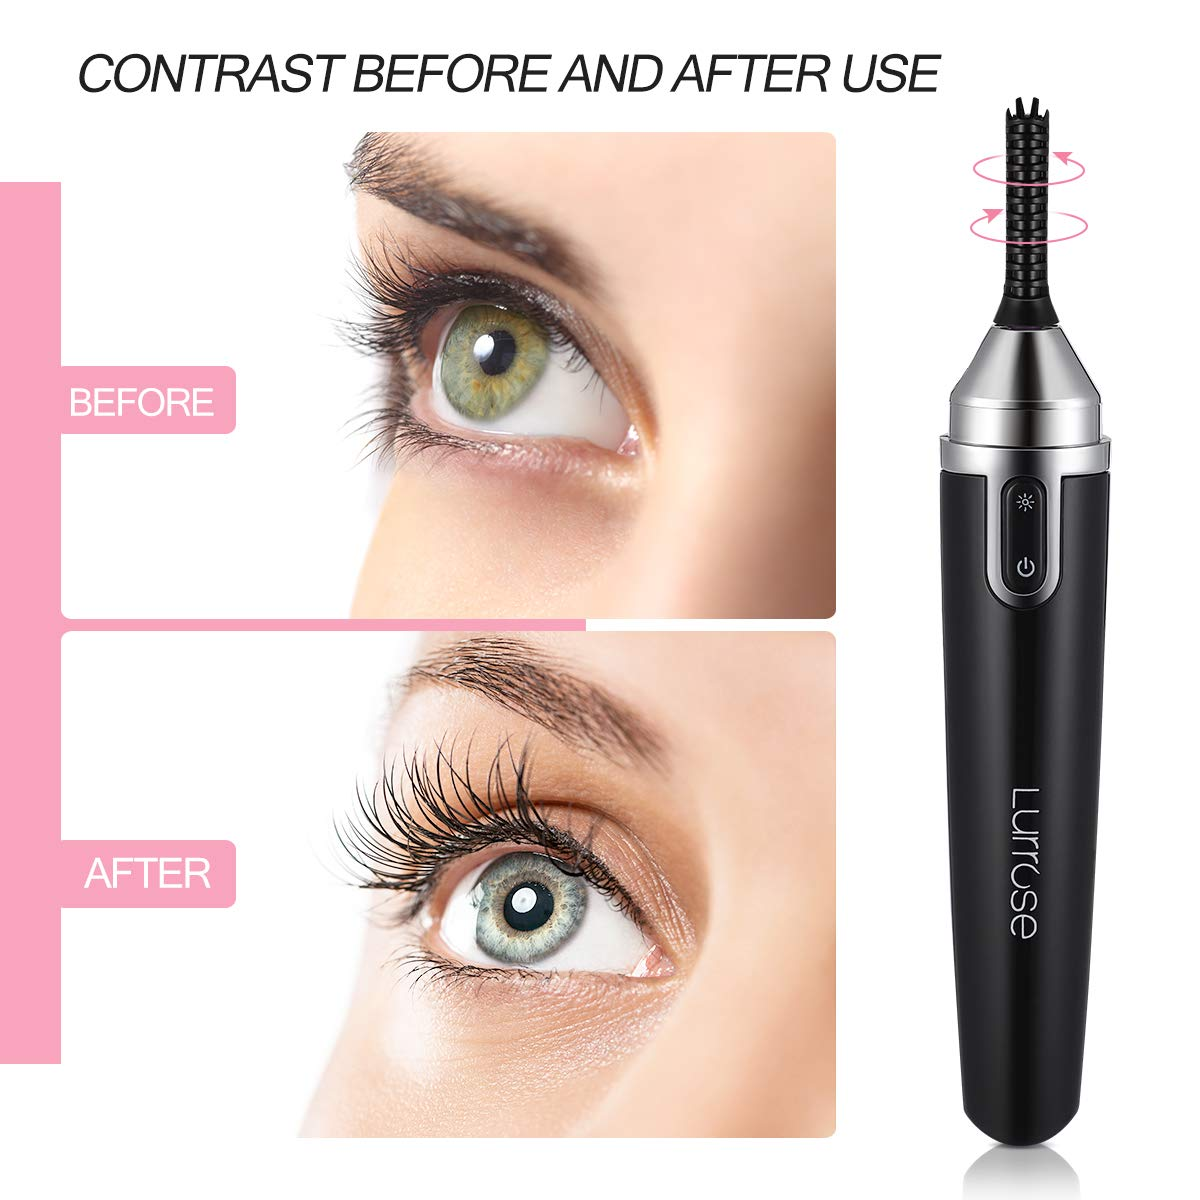 Electric Lash Curler, Heated Eyelash Curler Portable Quick Heating Long Lasting Natural Eyelash Curler